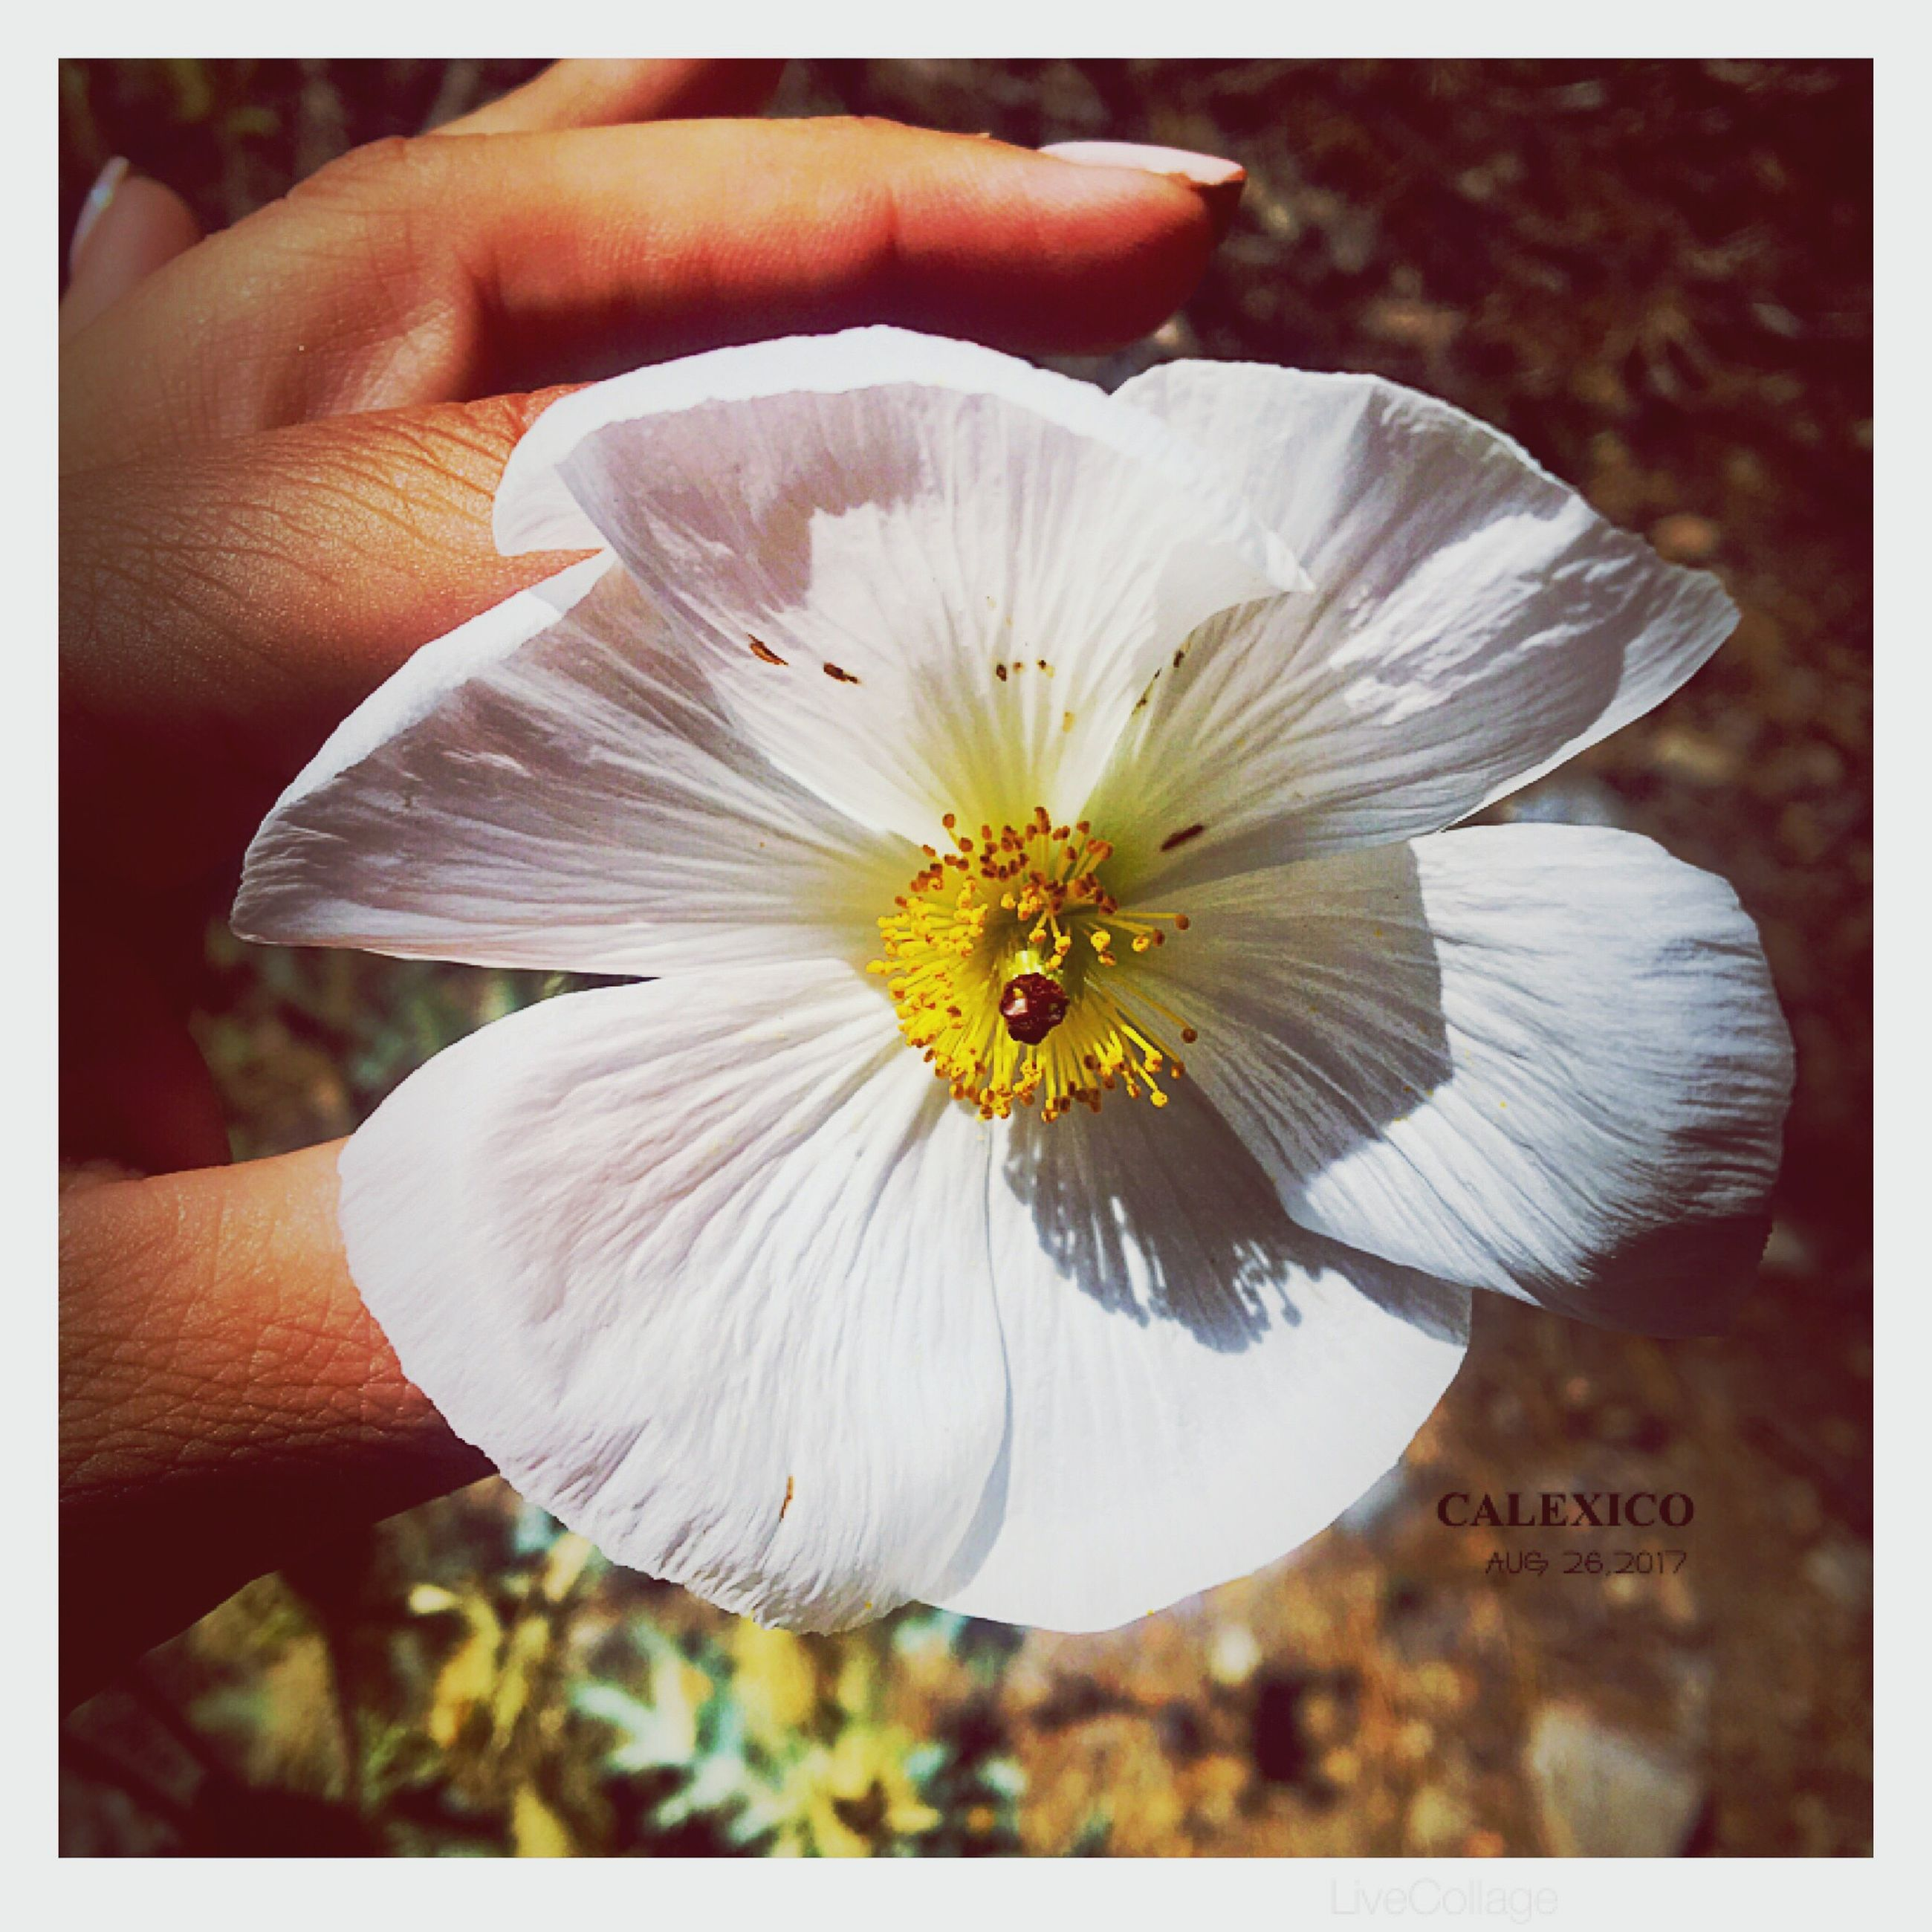 flower, human hand, petal, white color, fragility, flower head, beauty in nature, human body part, freshness, holding, close-up, one person, nature, outdoors, day, real people, people